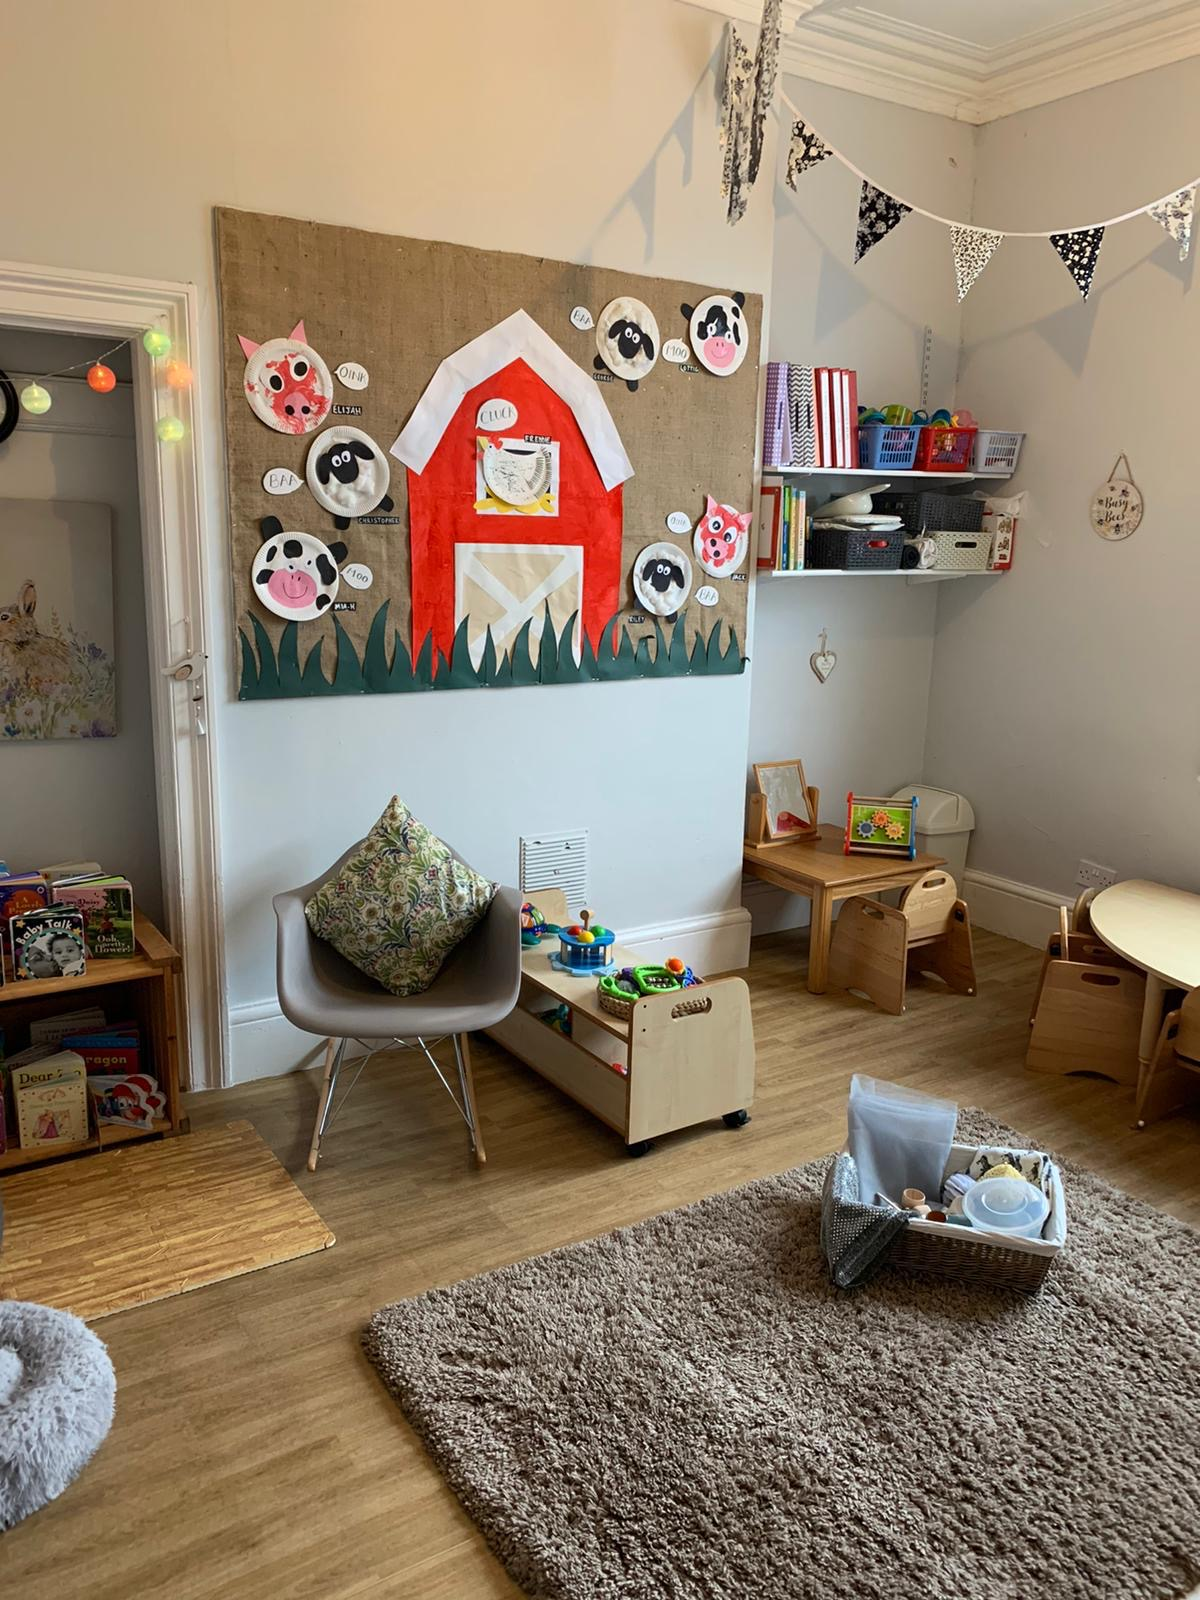 Our Baby Room!